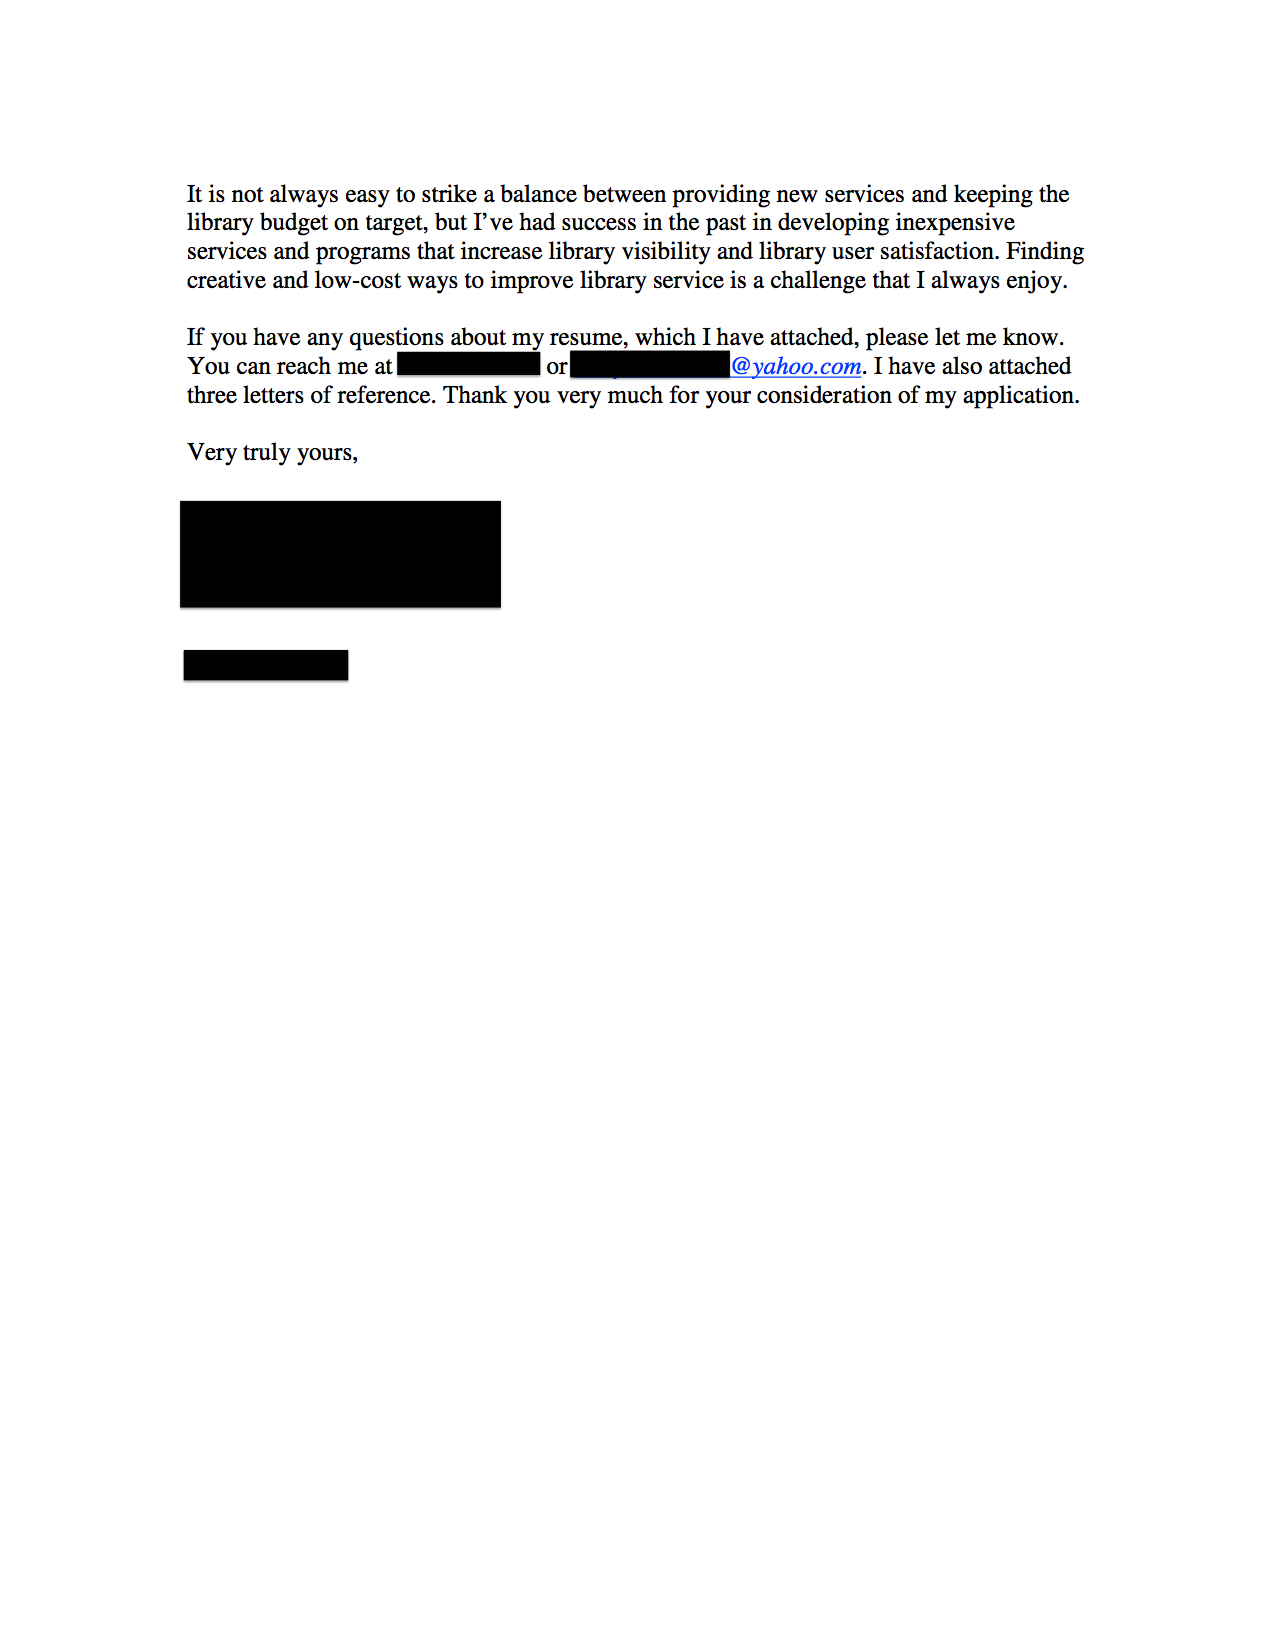 Public Library Director Cover Letter Open Cover Letters